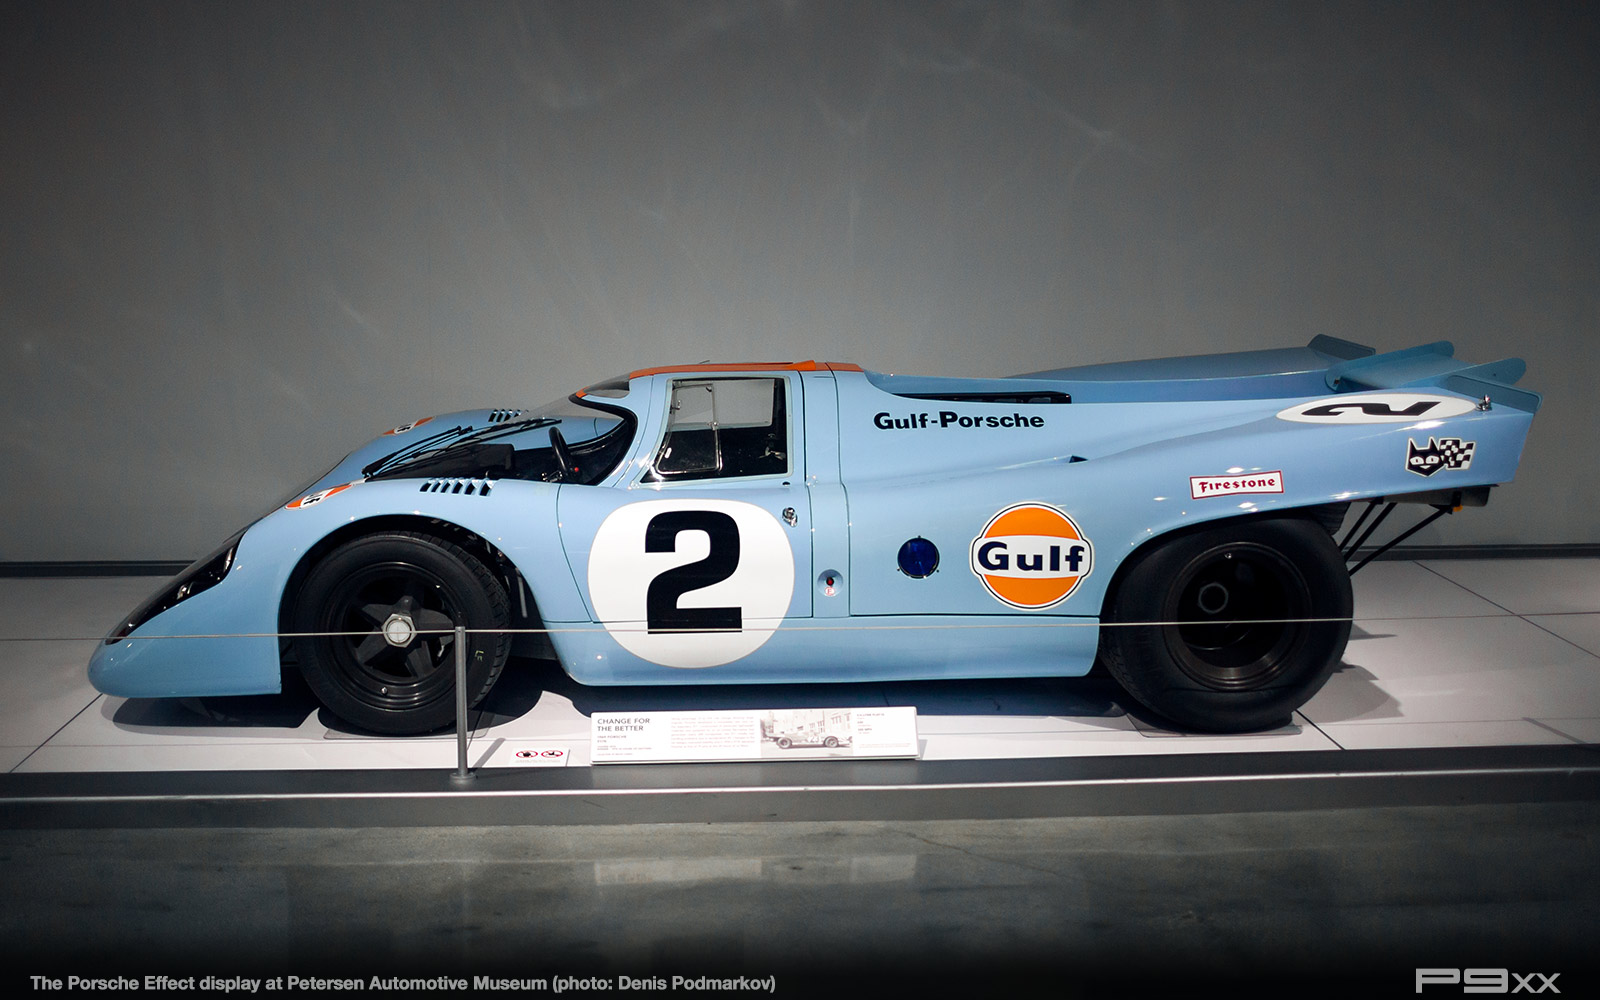 2018-the-porsche-effect-petersen-museum-dpod-289